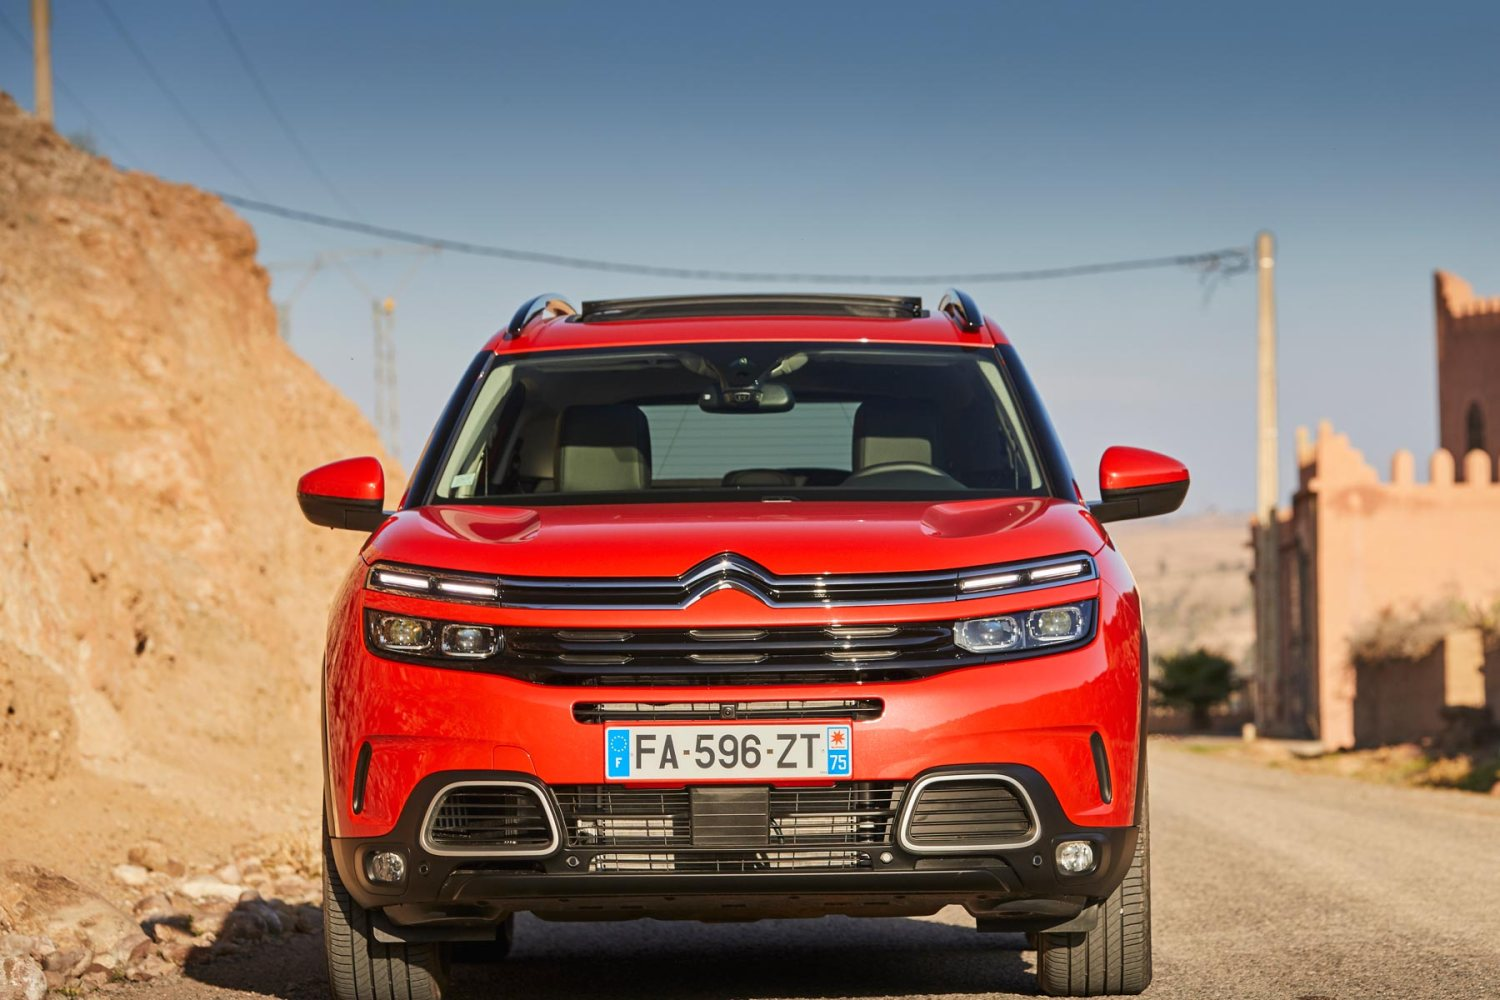 2019 citroen c5 aircross review quirky crossover plays the comfort card. Black Bedroom Furniture Sets. Home Design Ideas